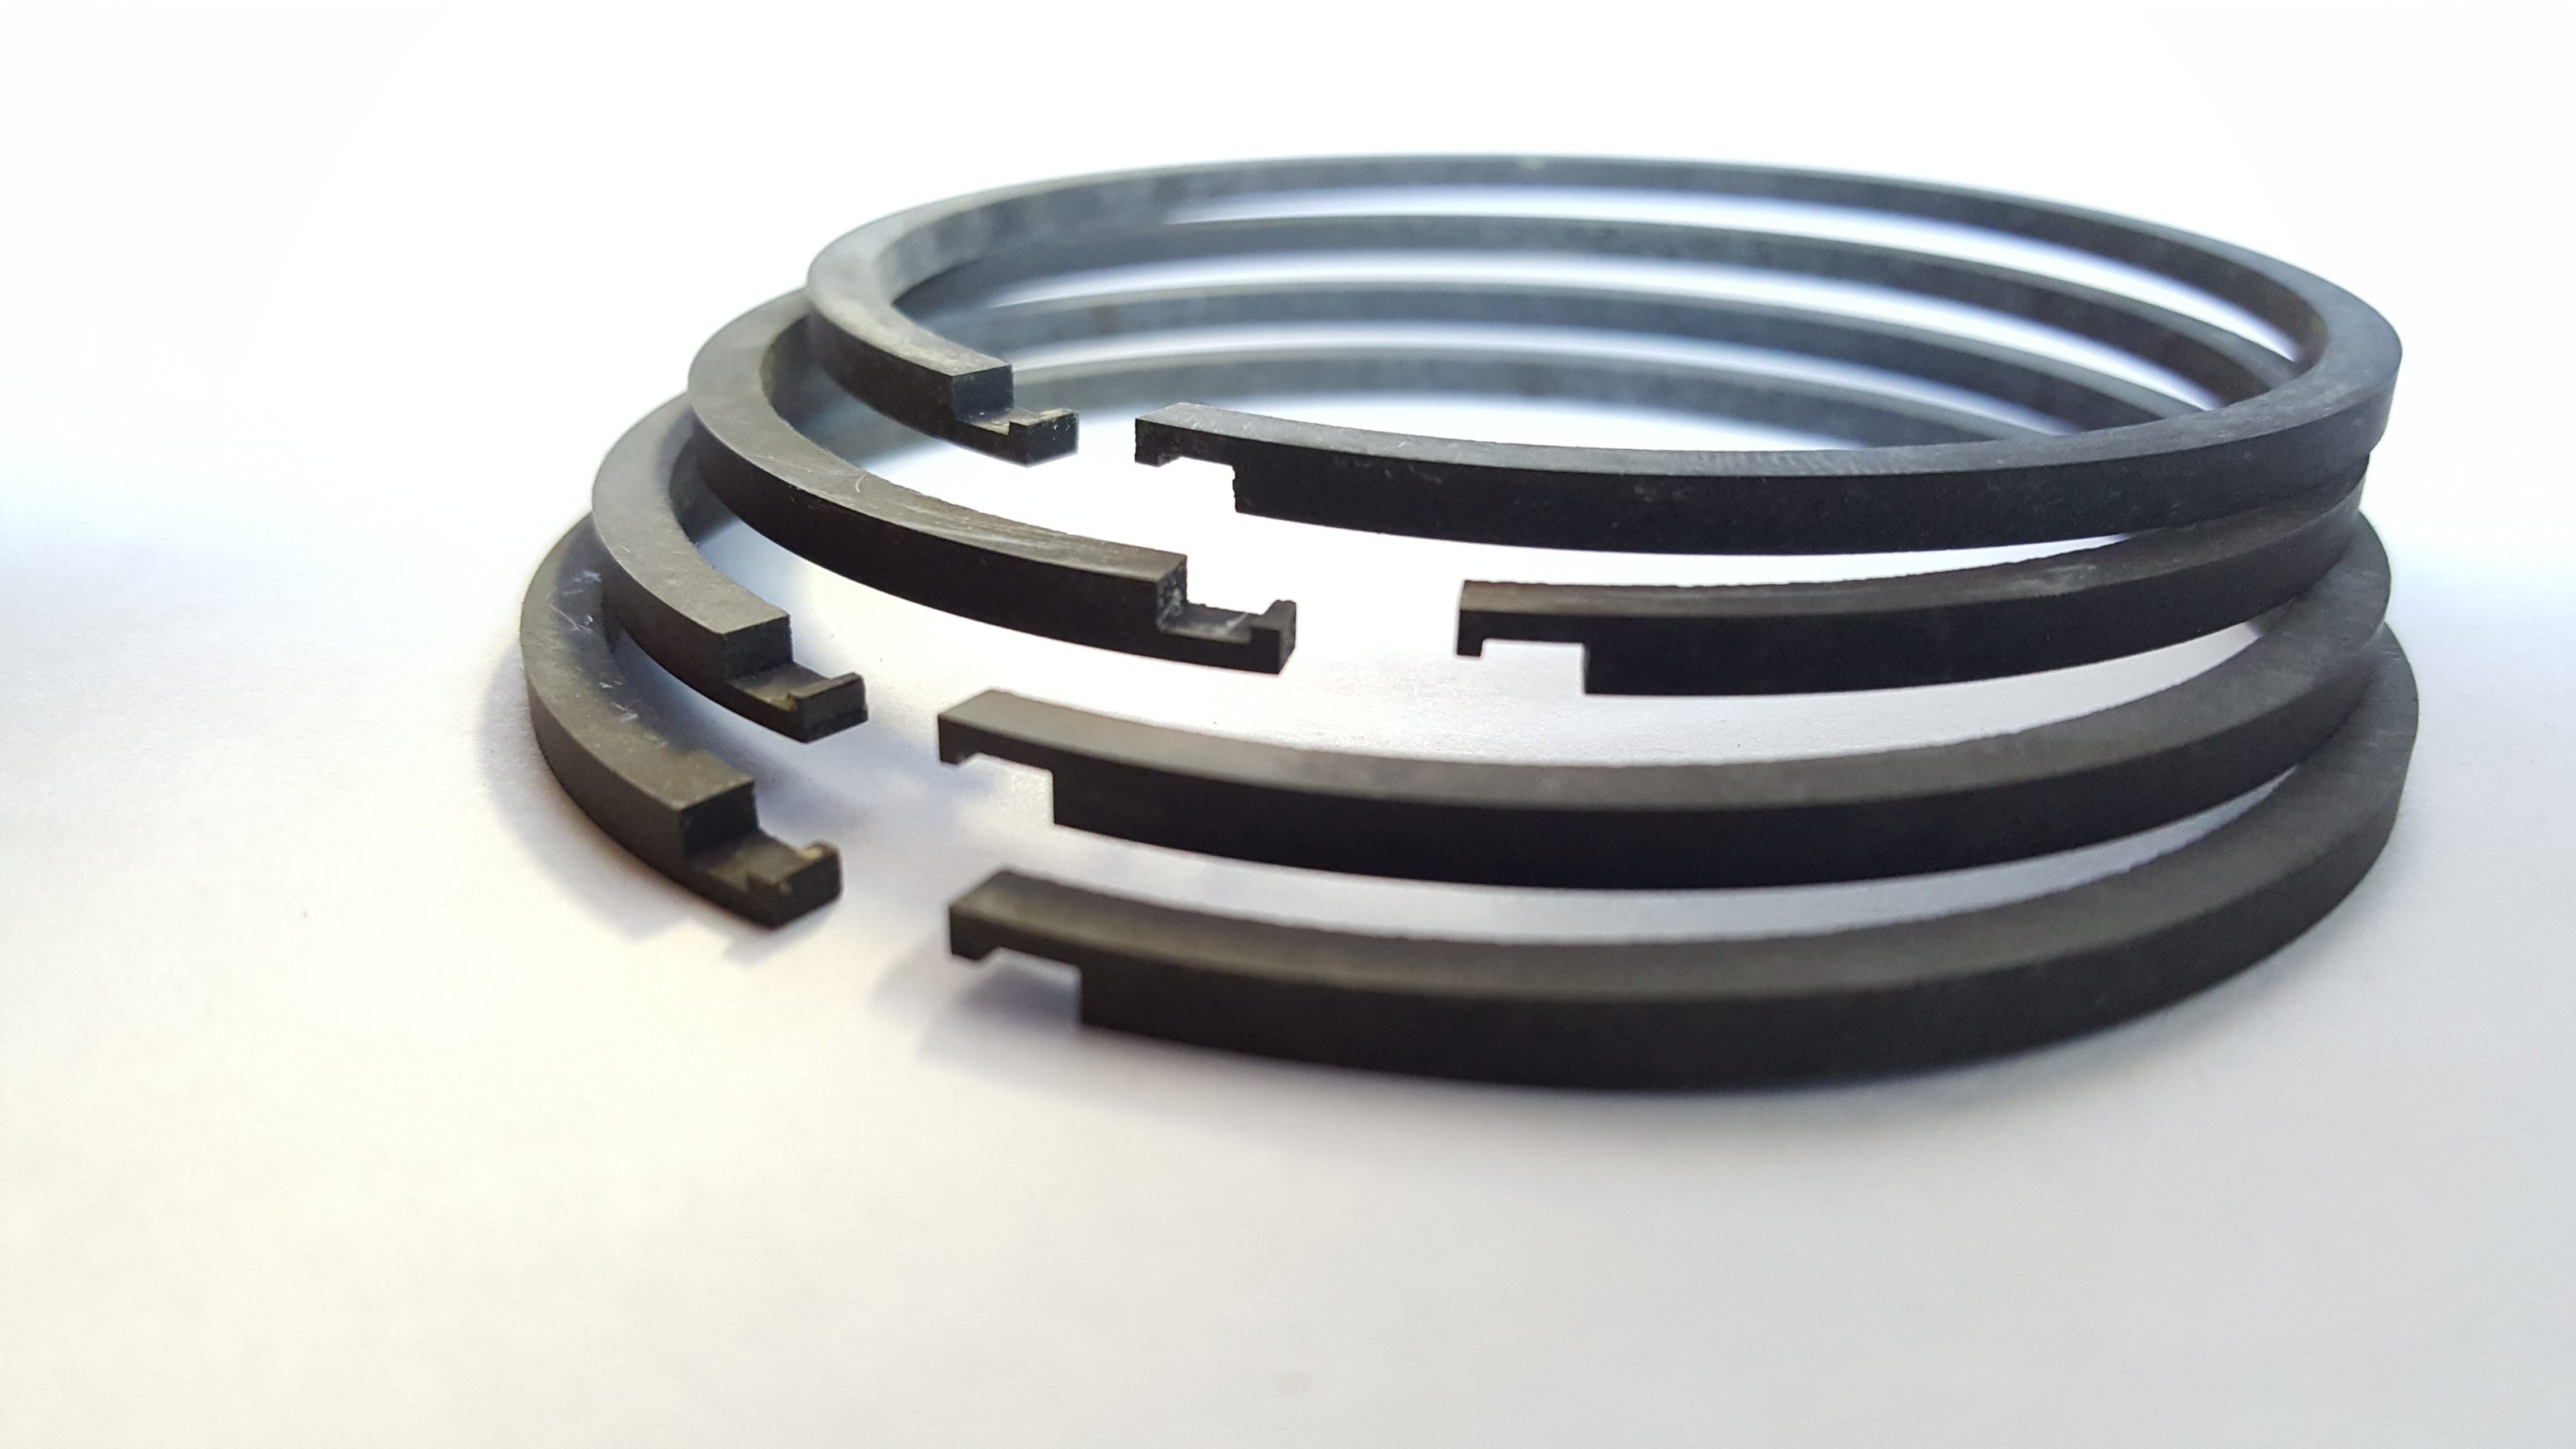 Hook Step piston ring joint configuration